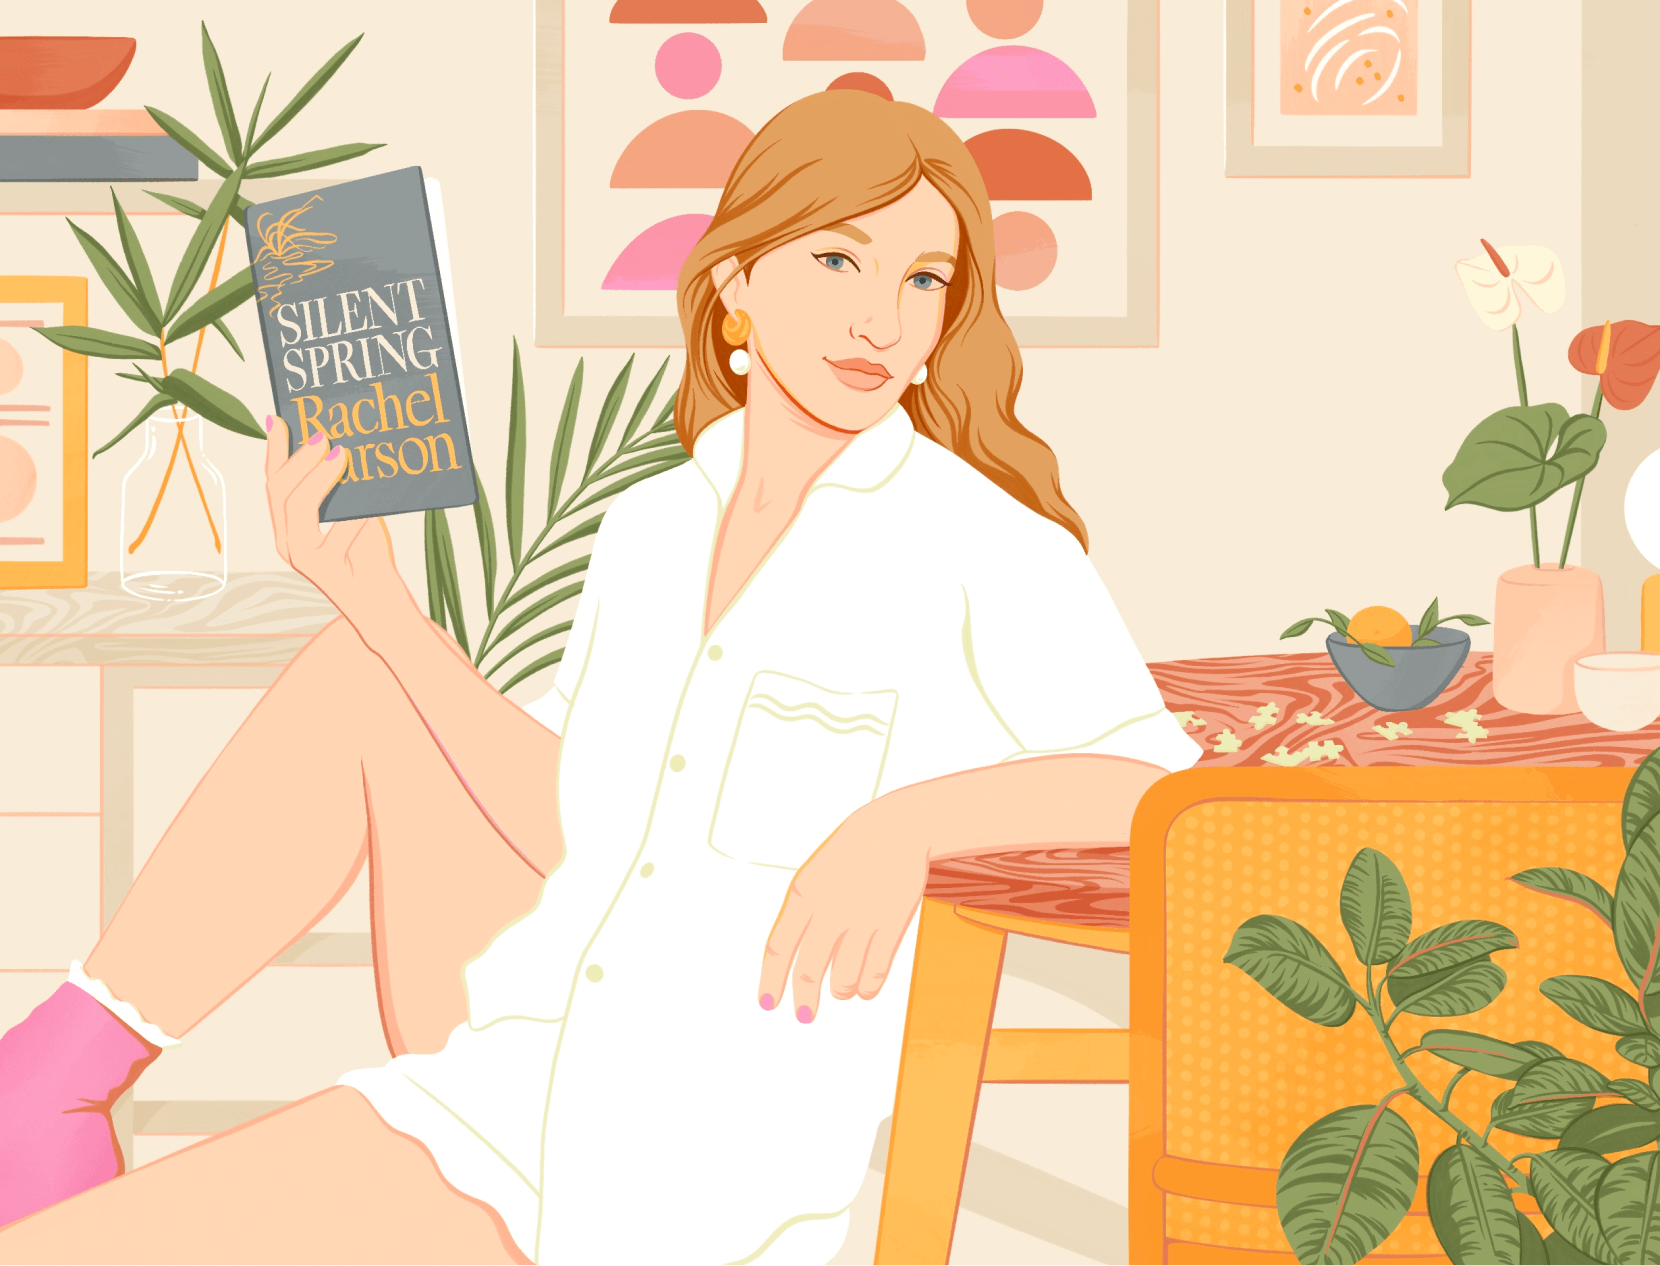 illustration of a woman holding a book